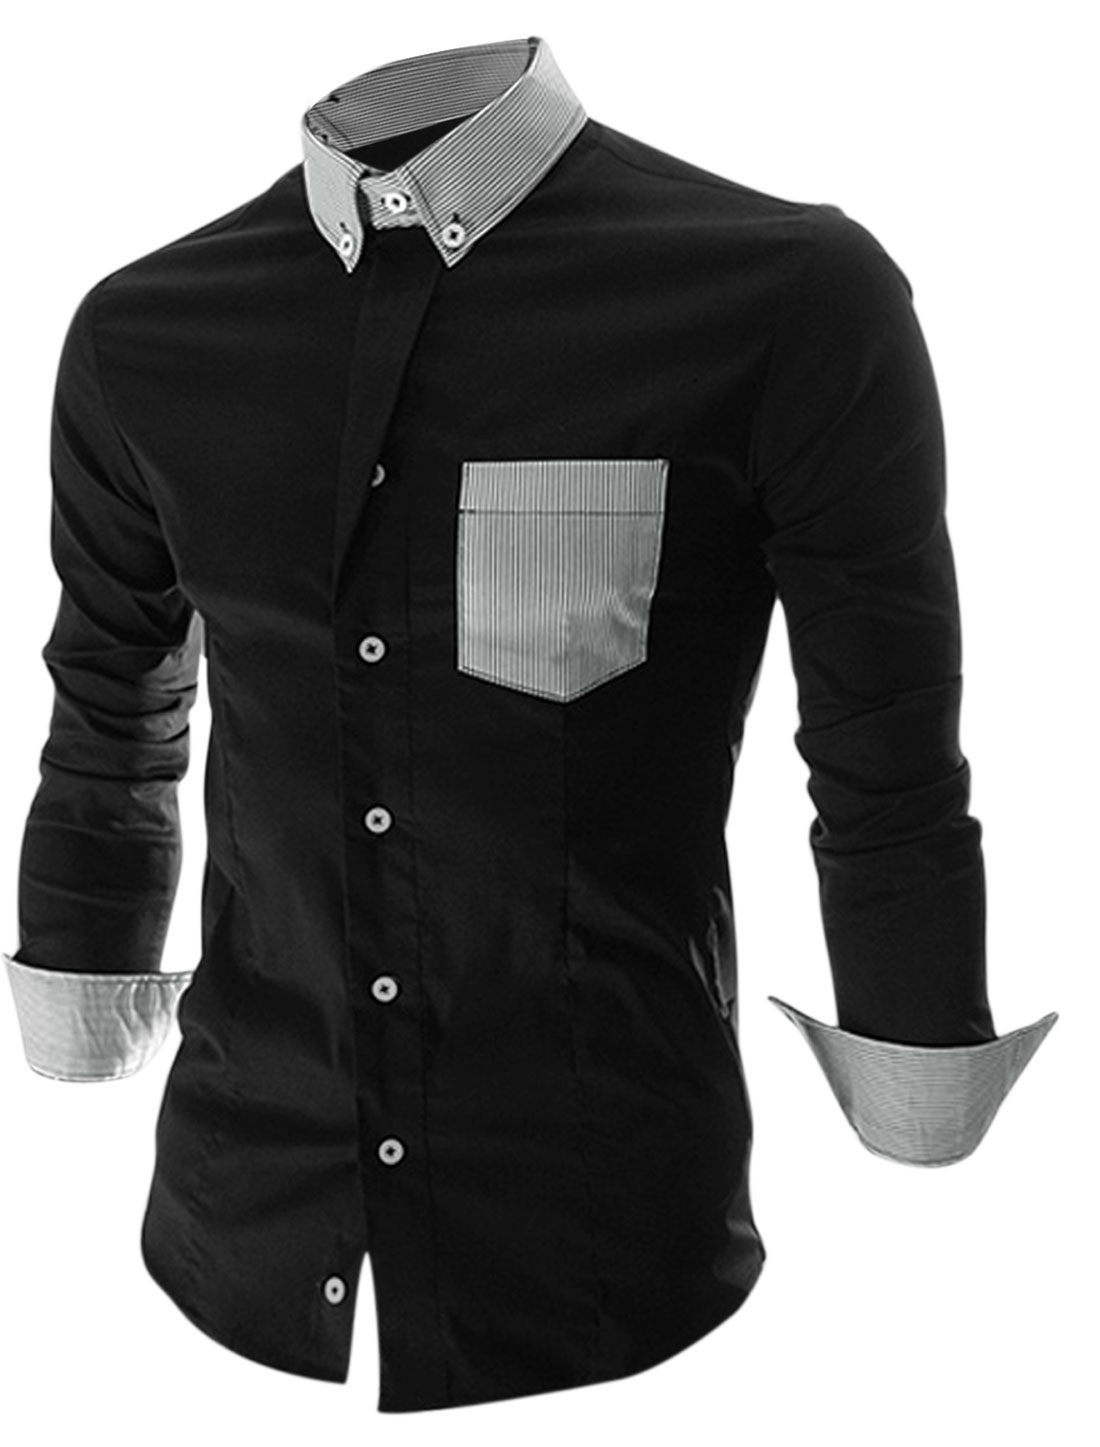 Men Long Sleeve Single Breasted Stripes Colorblock Shirt Black M